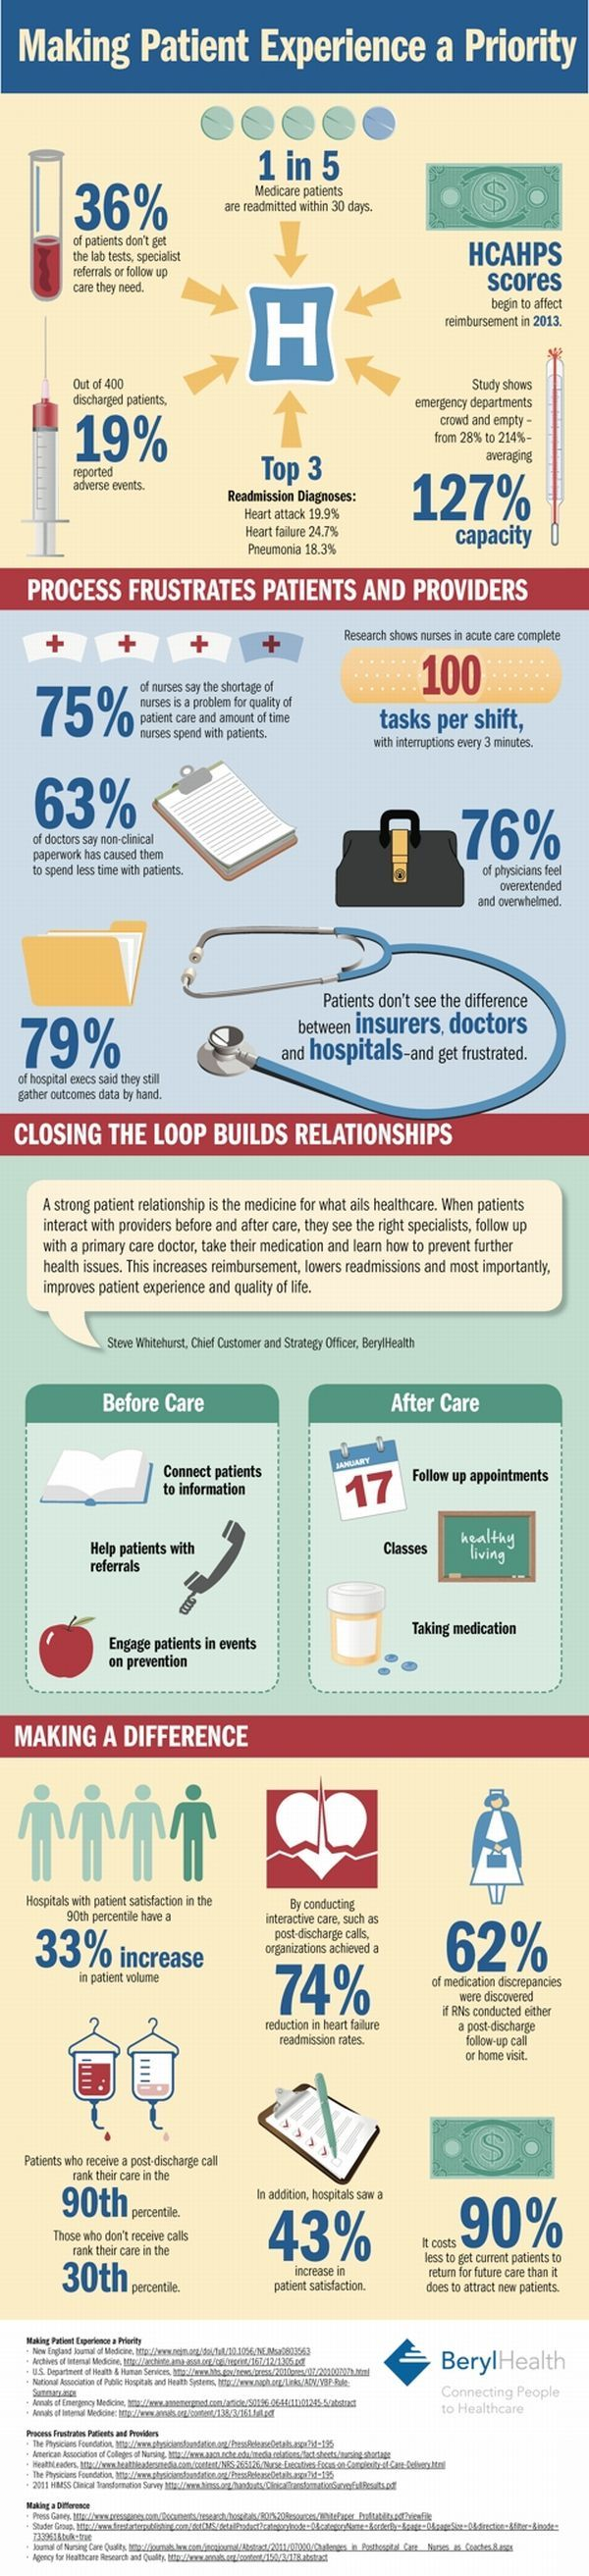 Infographic: Prioritize the patient experience  http://www.healthcarecommunication.com/Main/Articles/10355.aspx#